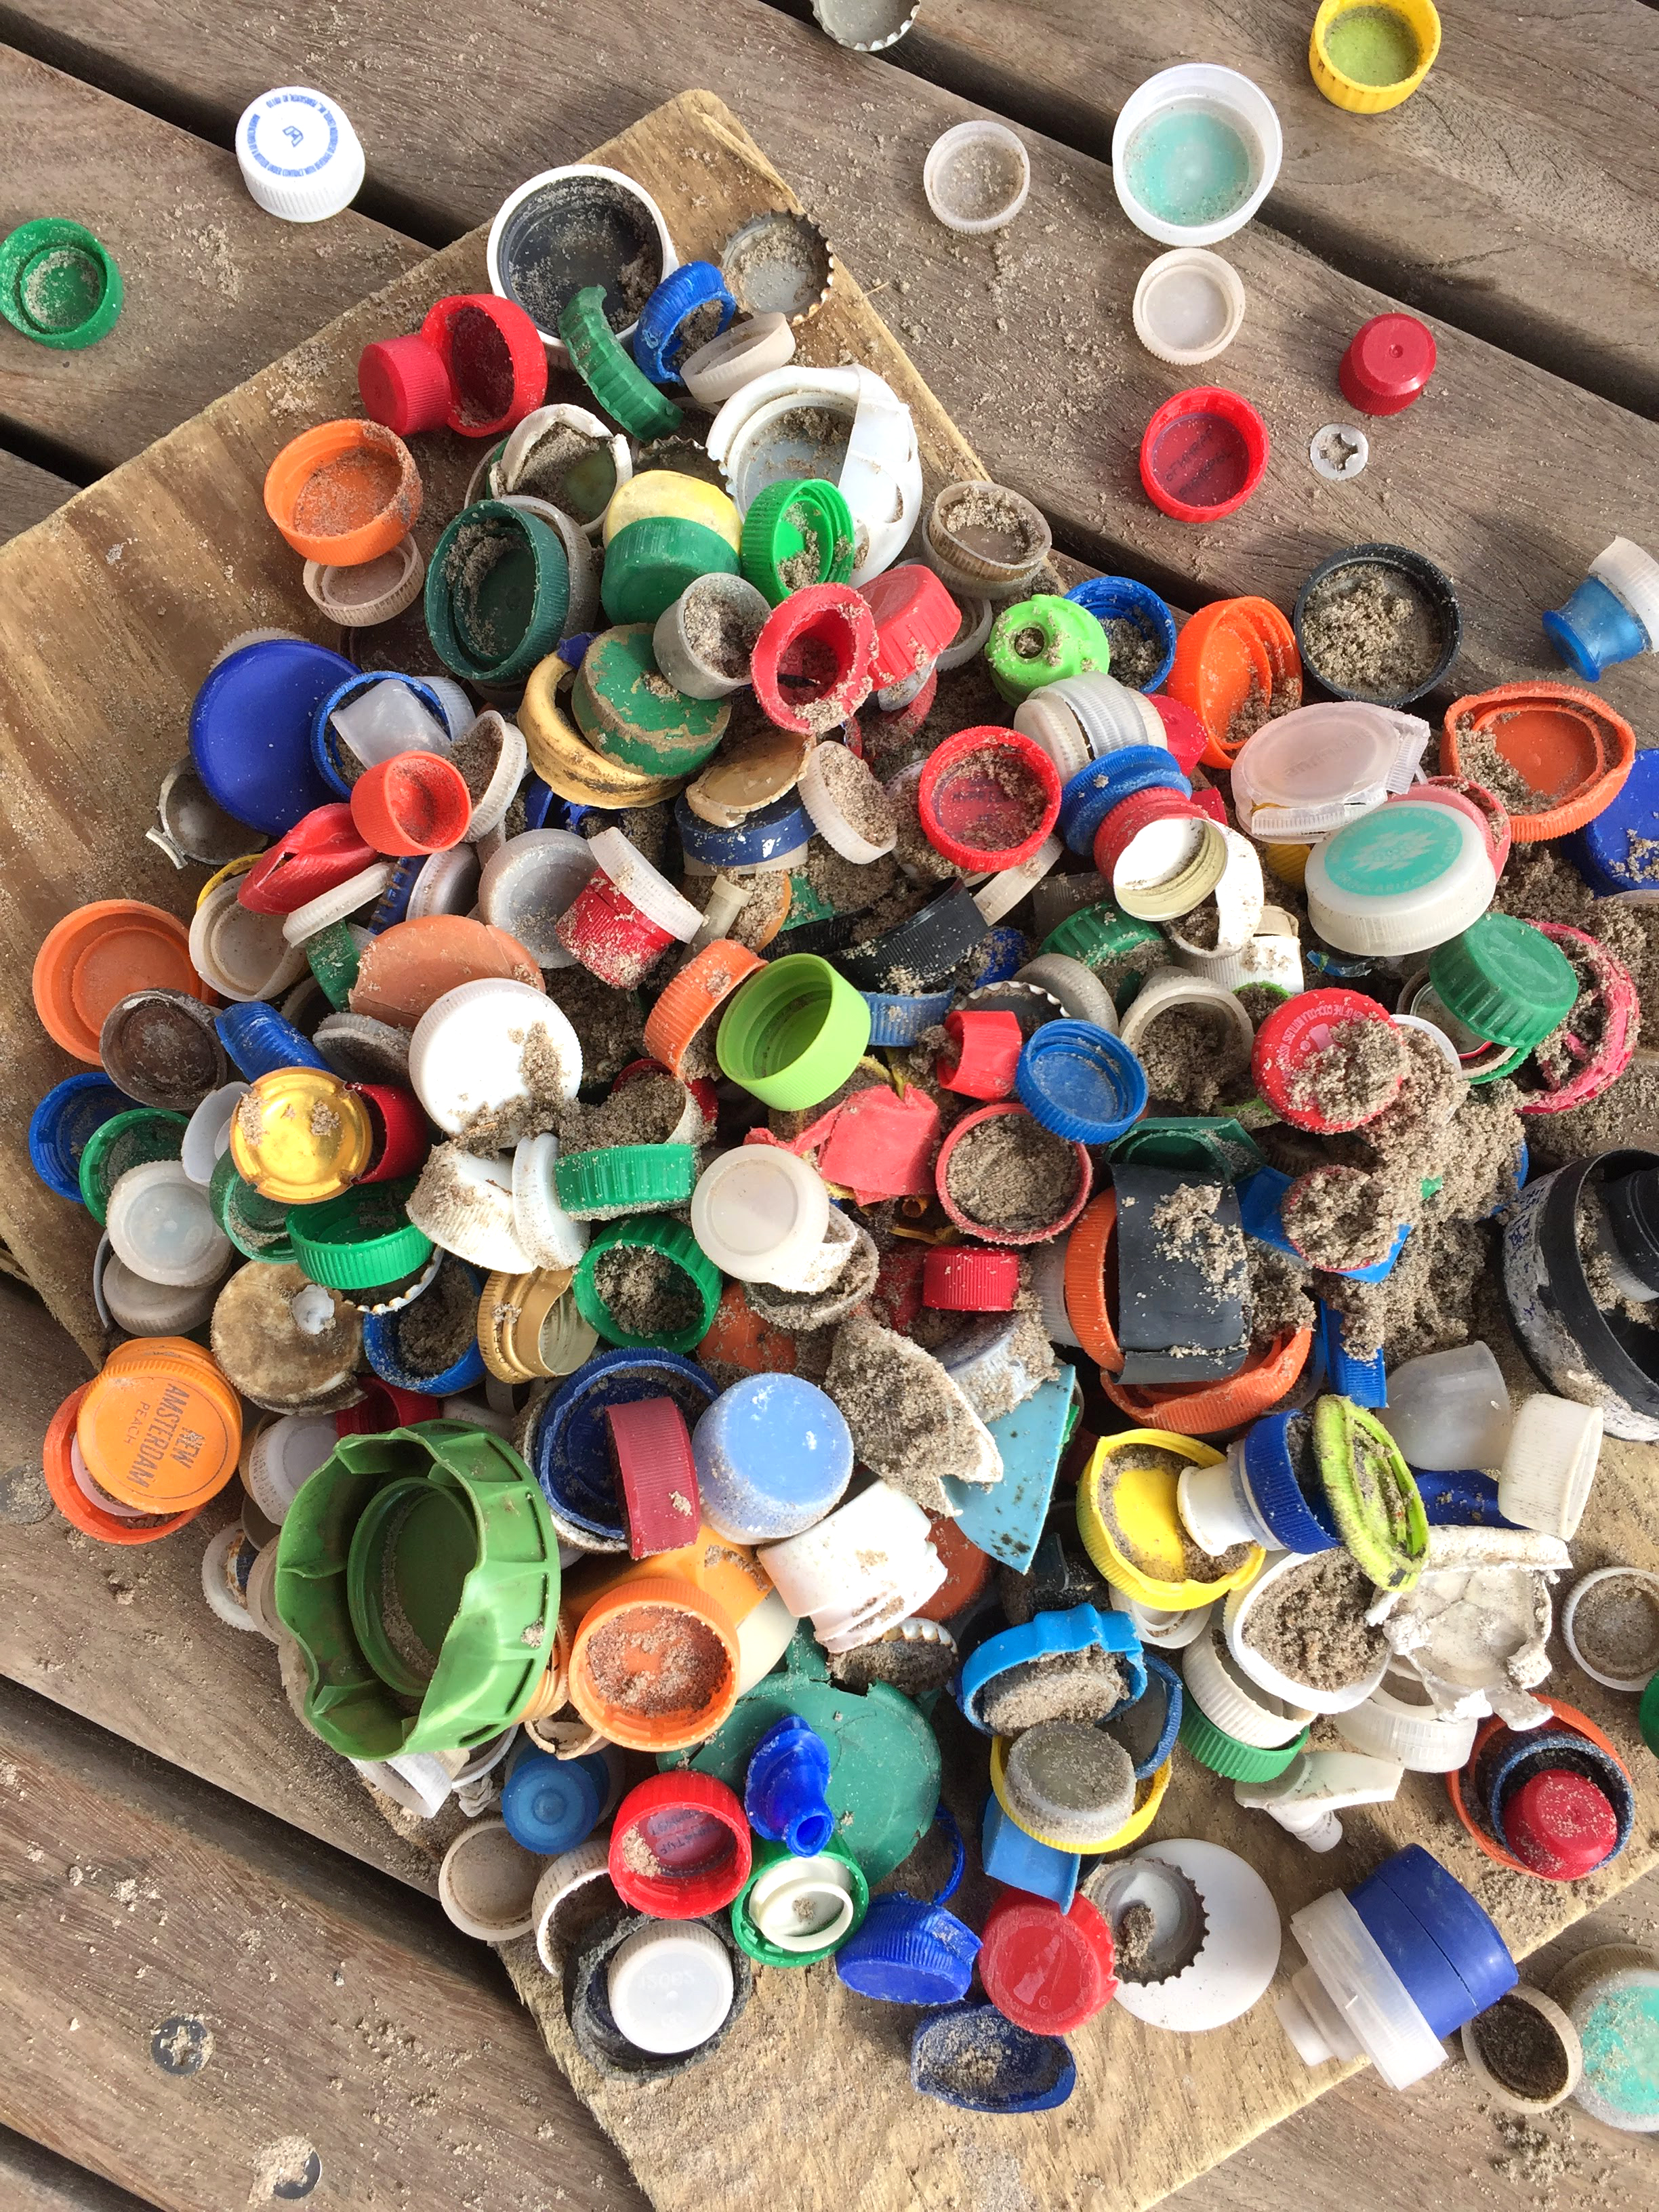 amy_chen_design_coney_island_beach_clean_up_bottle_caps.JPG